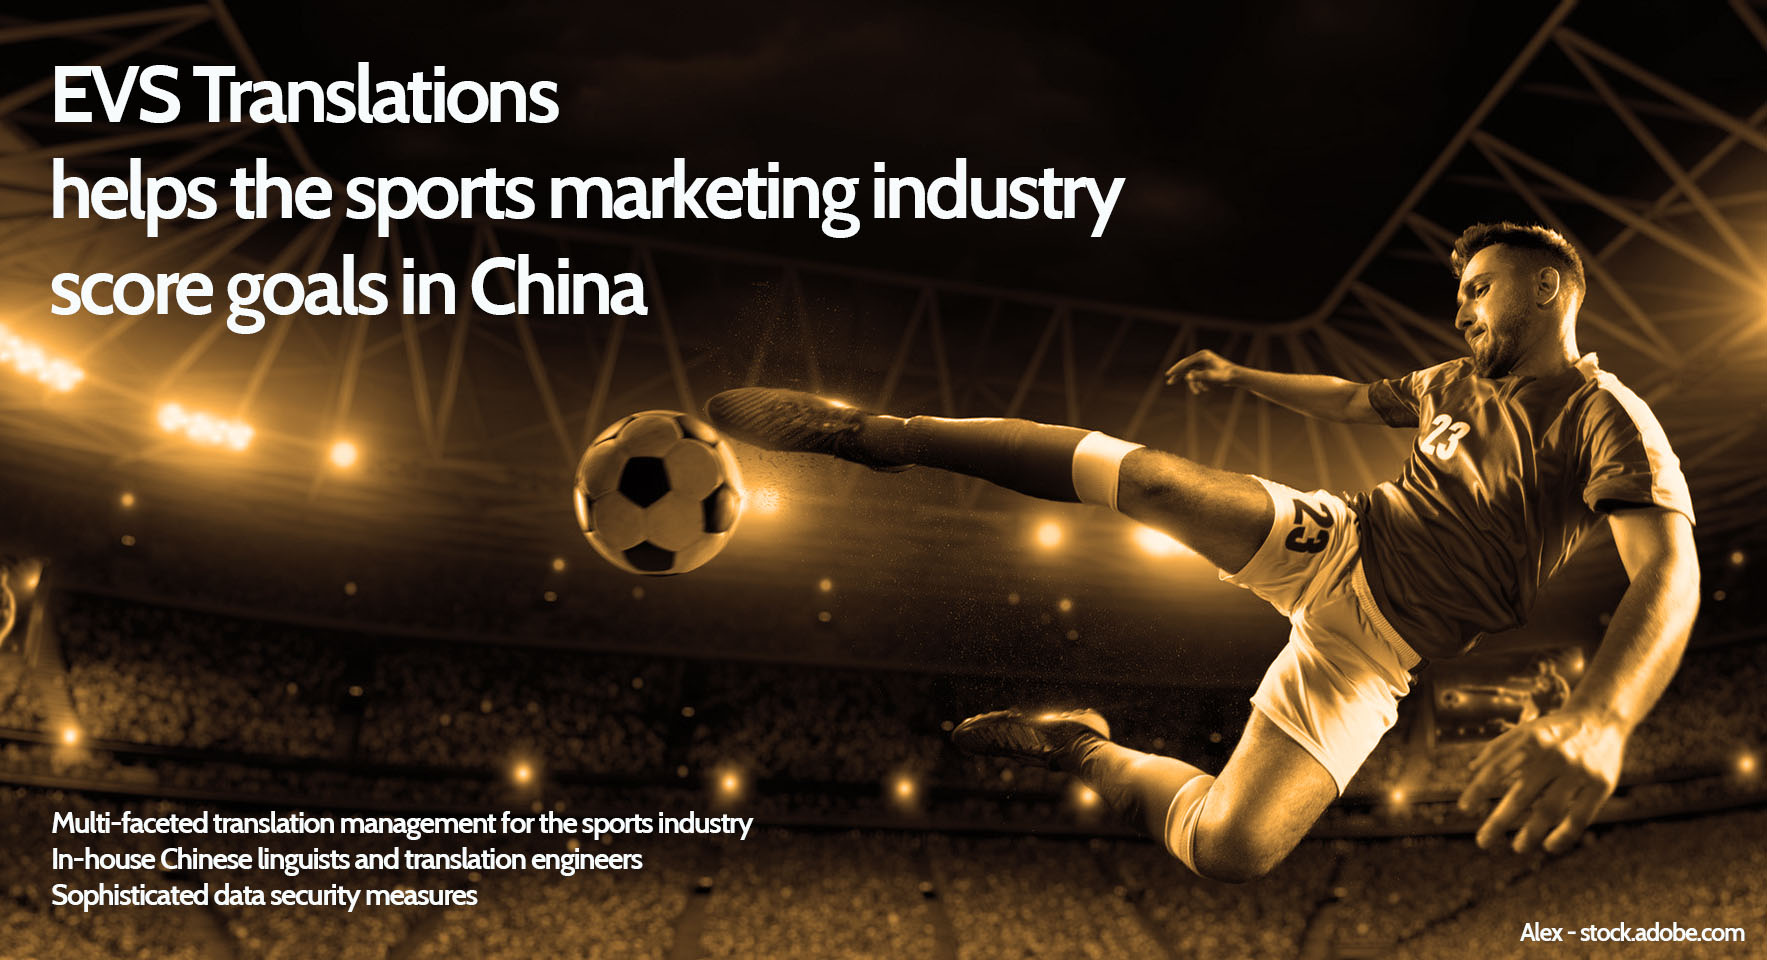 EVS Translations helps the sports marketing industry score goals in China